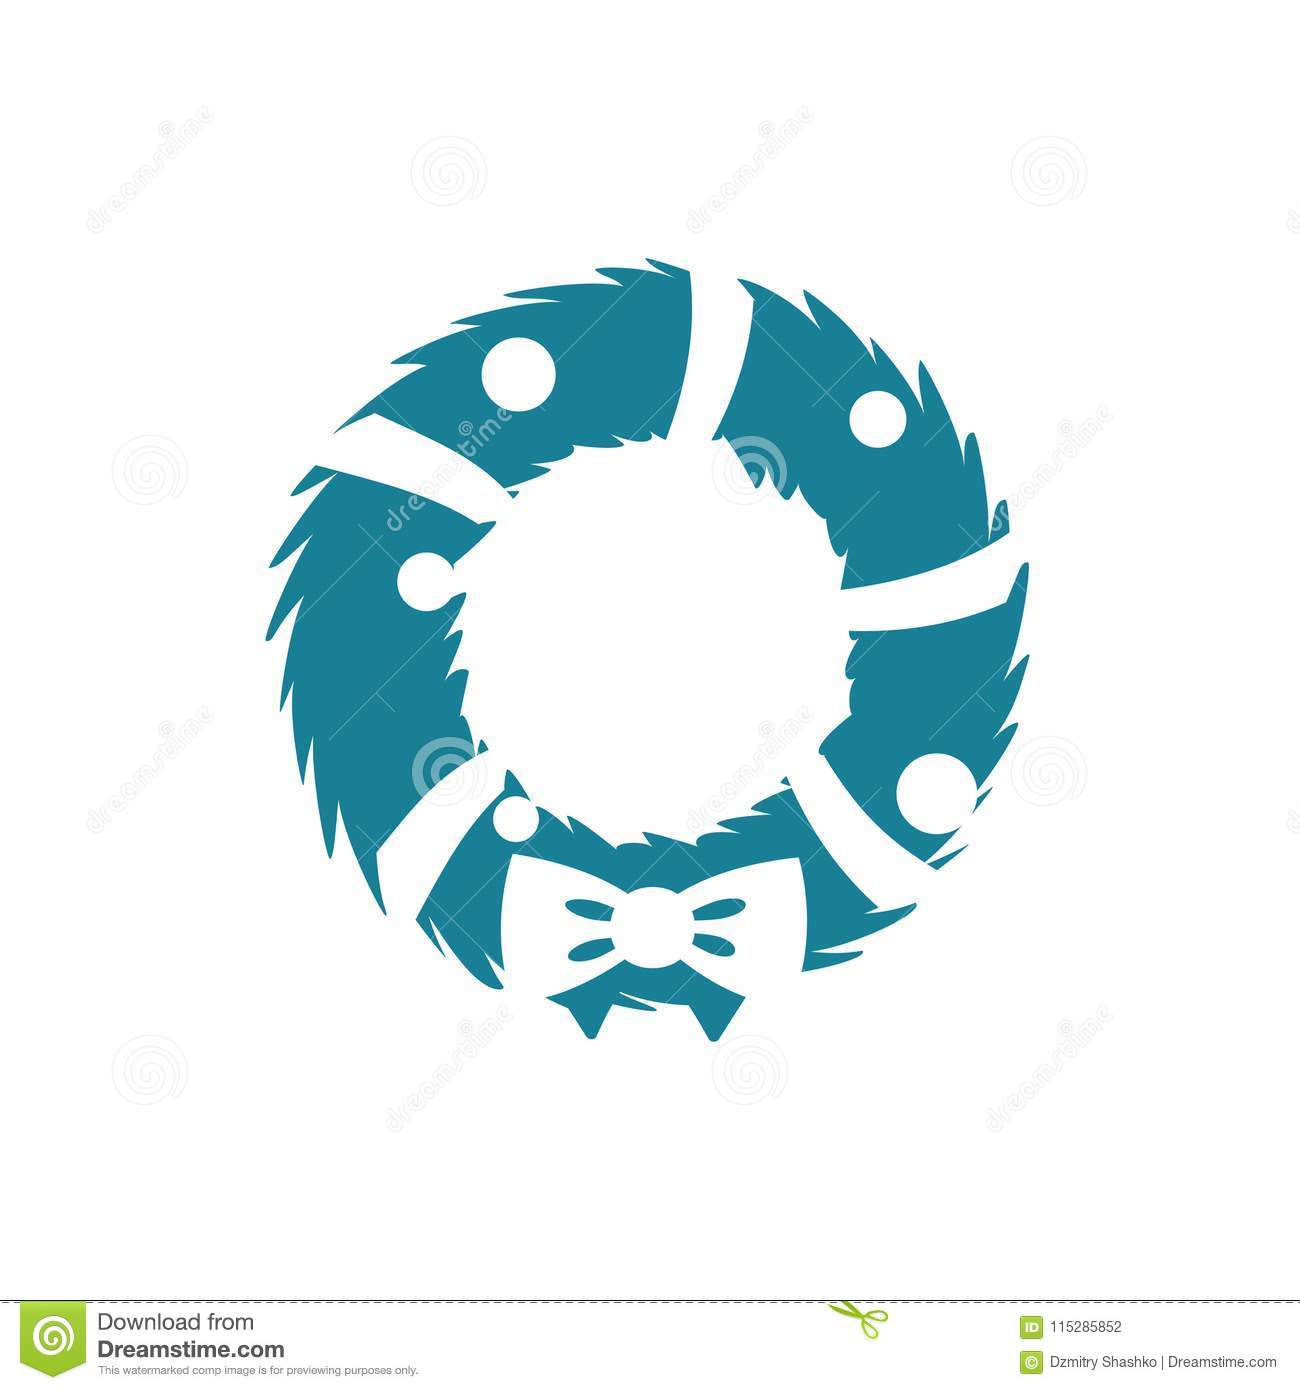 Christmas Wreath Silhouette Vector.Christmas Wreath Simple Icon Stock Vector Illustration Of